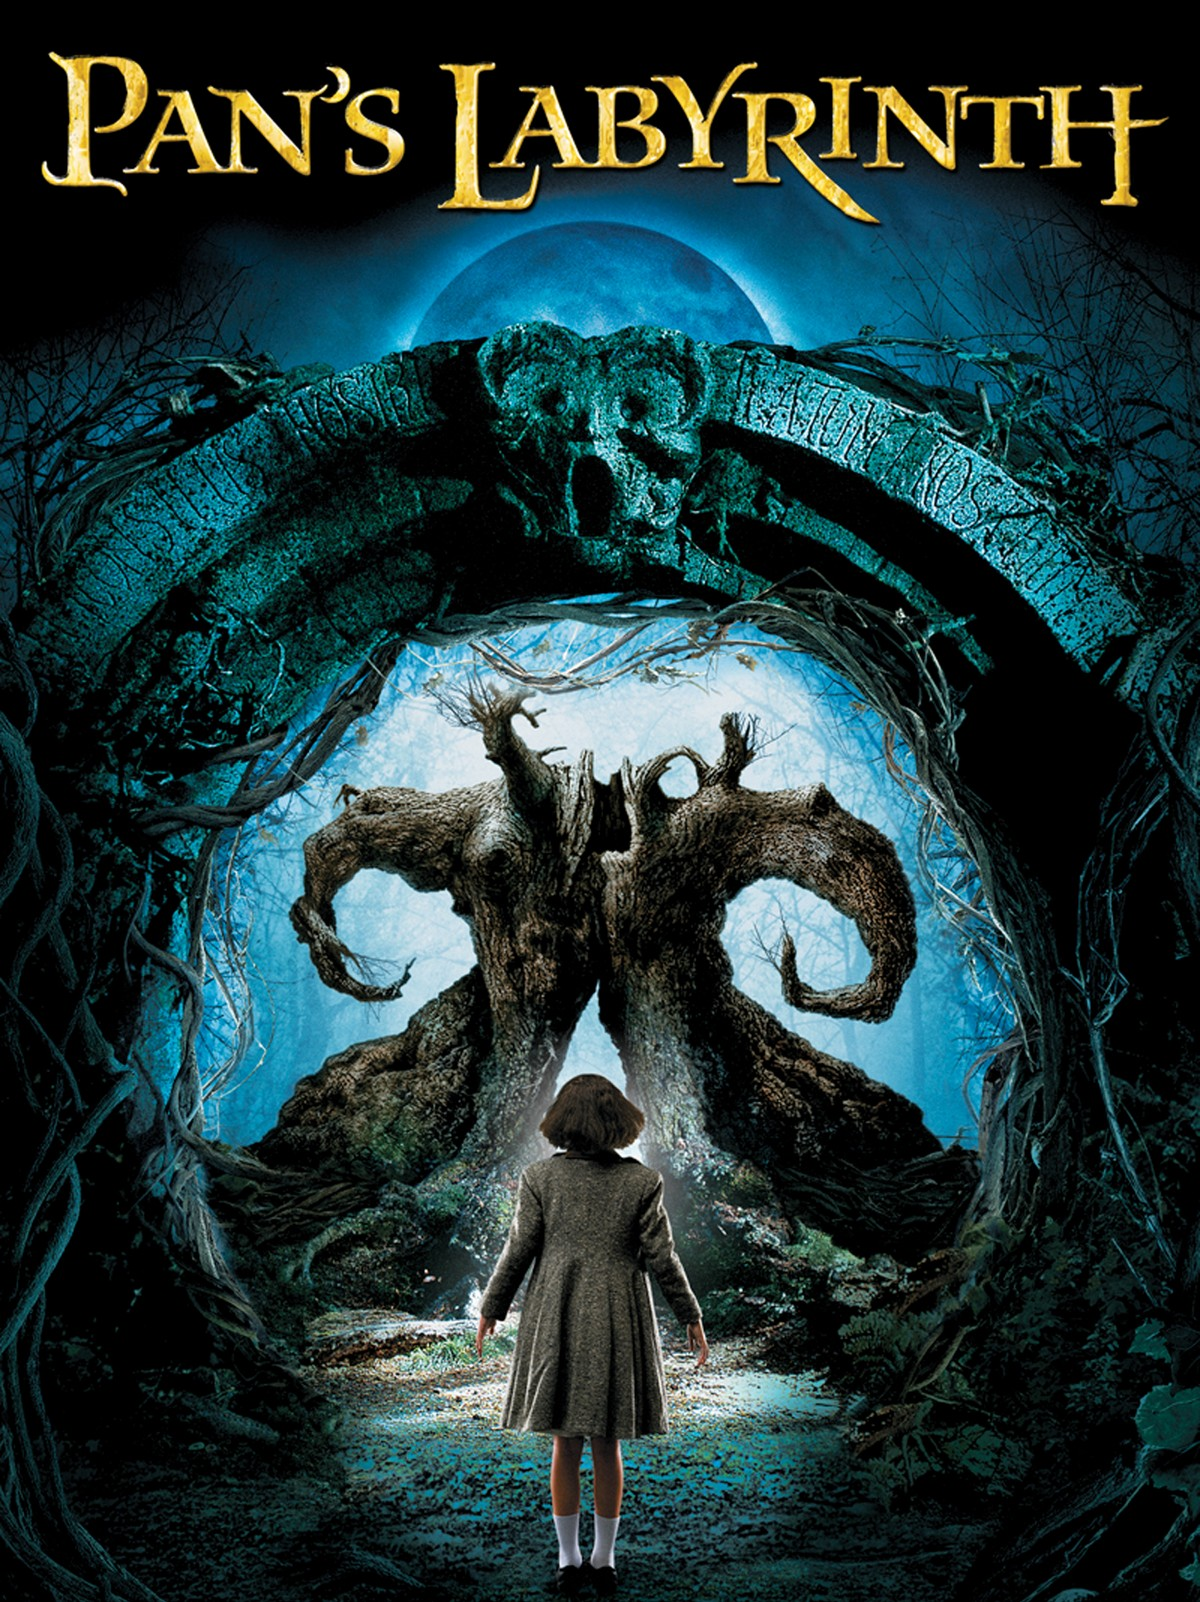 Film Fest Gent - Pan's Labyrinth